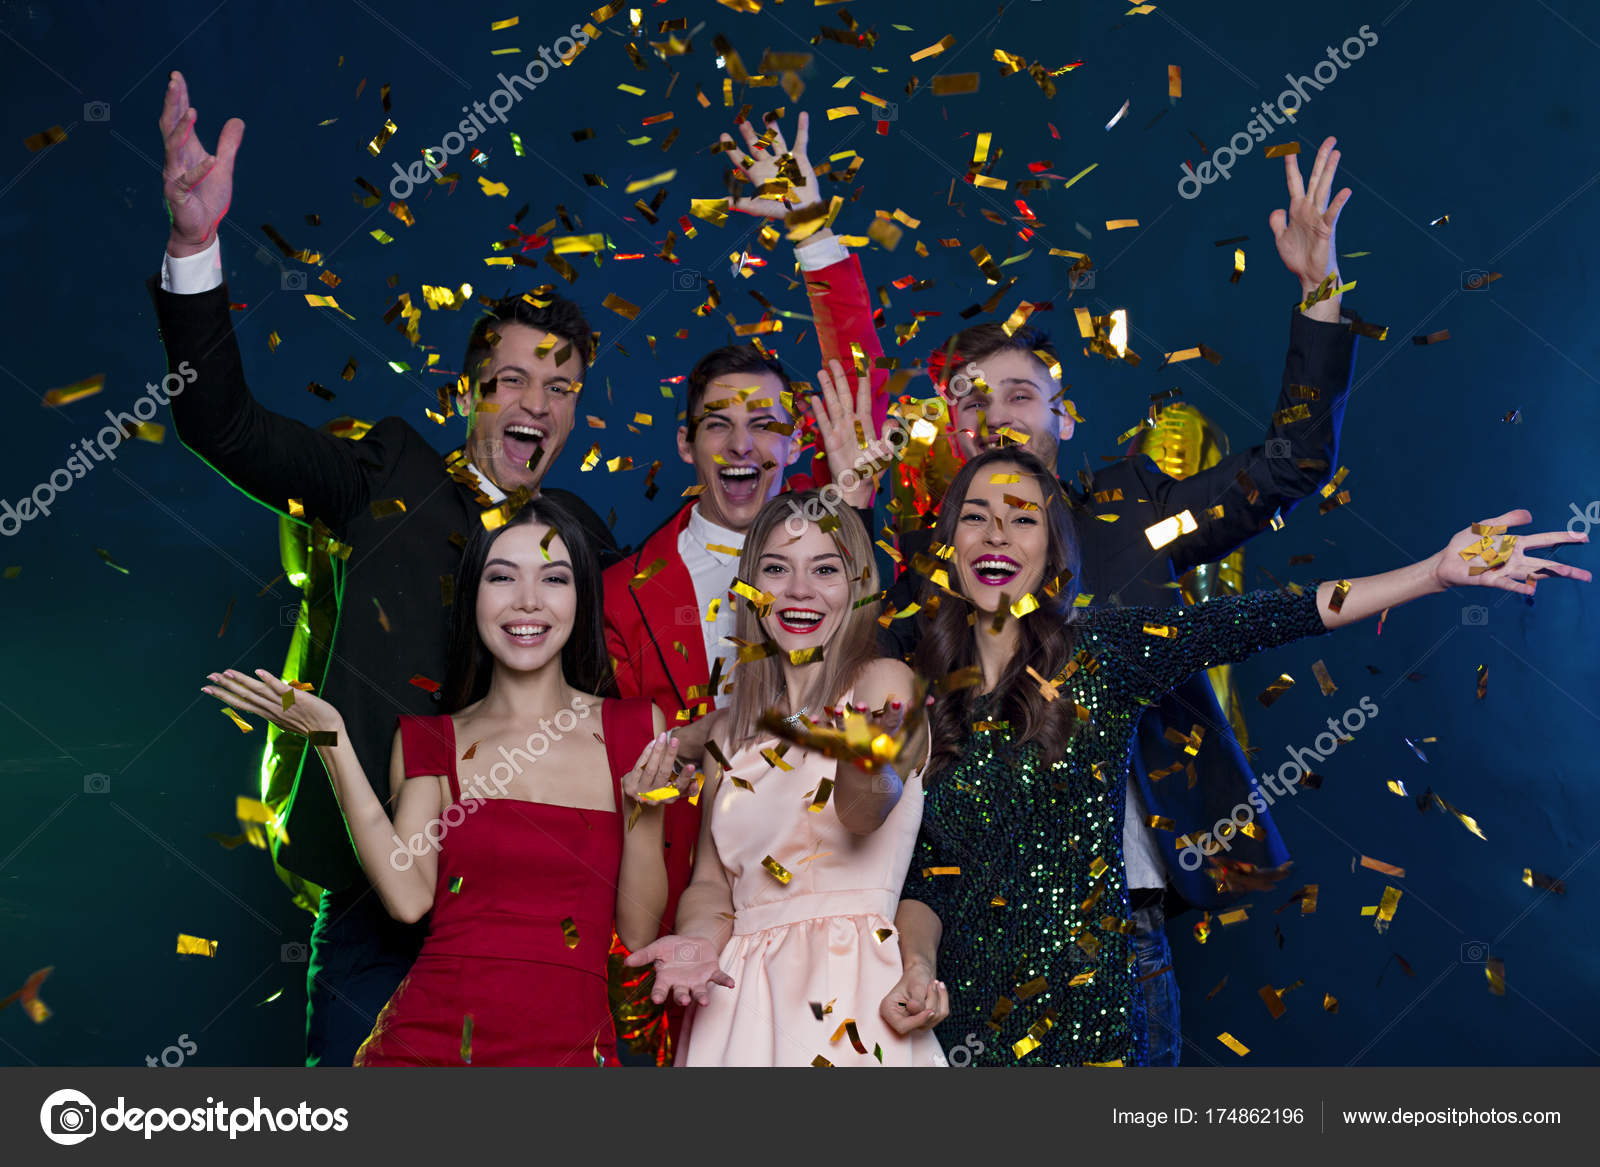 Cool Party Happy Smiling Friends Party Confetti People Holidays ...